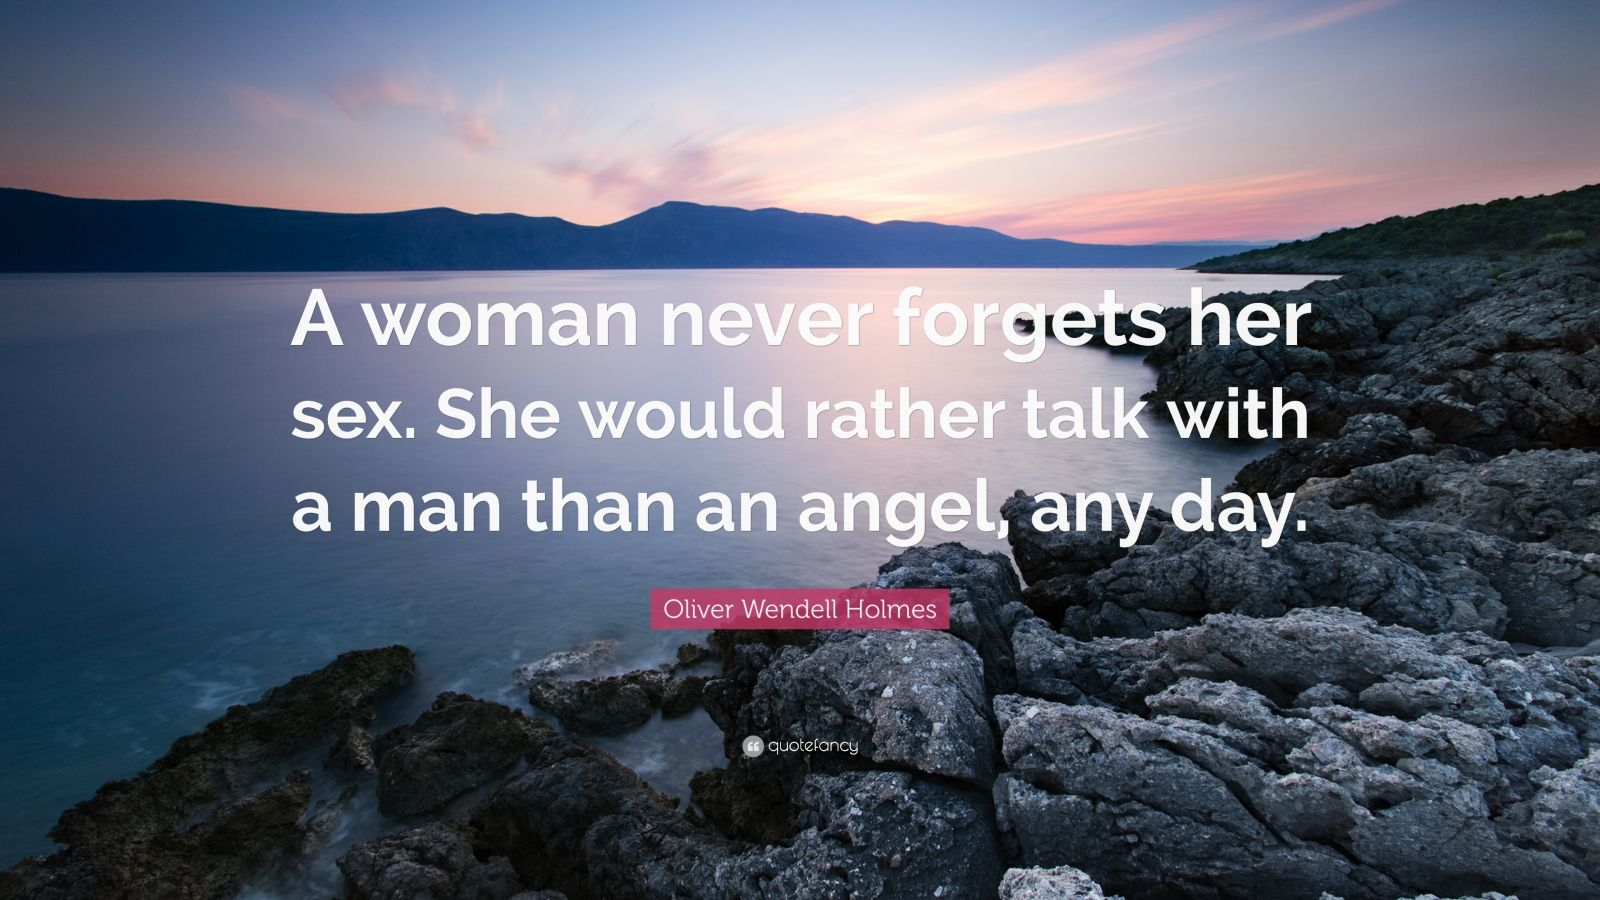 """Oliver Wendell Holmes Quote: """"A woman never forgets her sex. She would rather talk with a man than an angel, any day."""""""